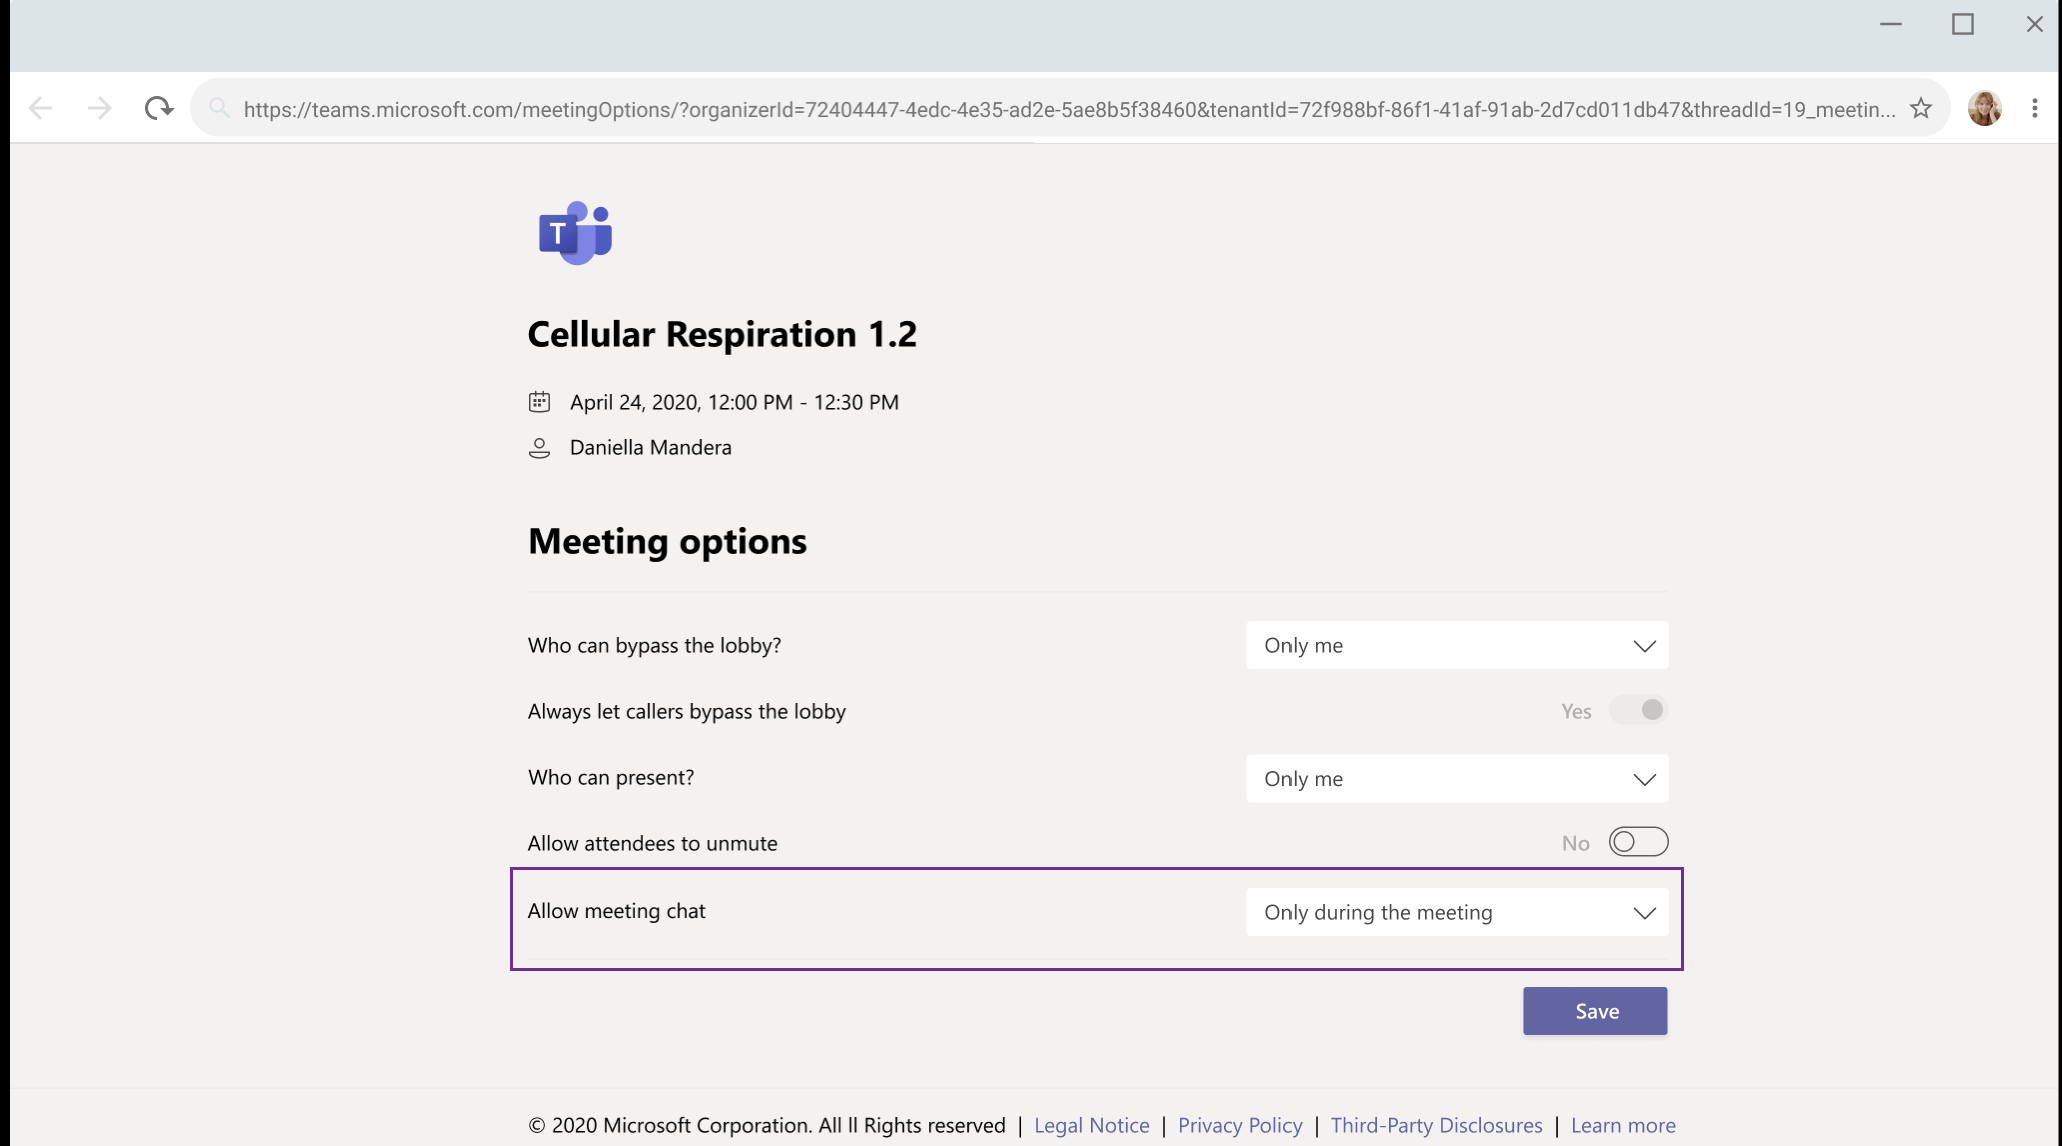 Microsoft will soon allow meeting organizers to mute chat during Teams meetings OnMSFT.com October 16, 2020